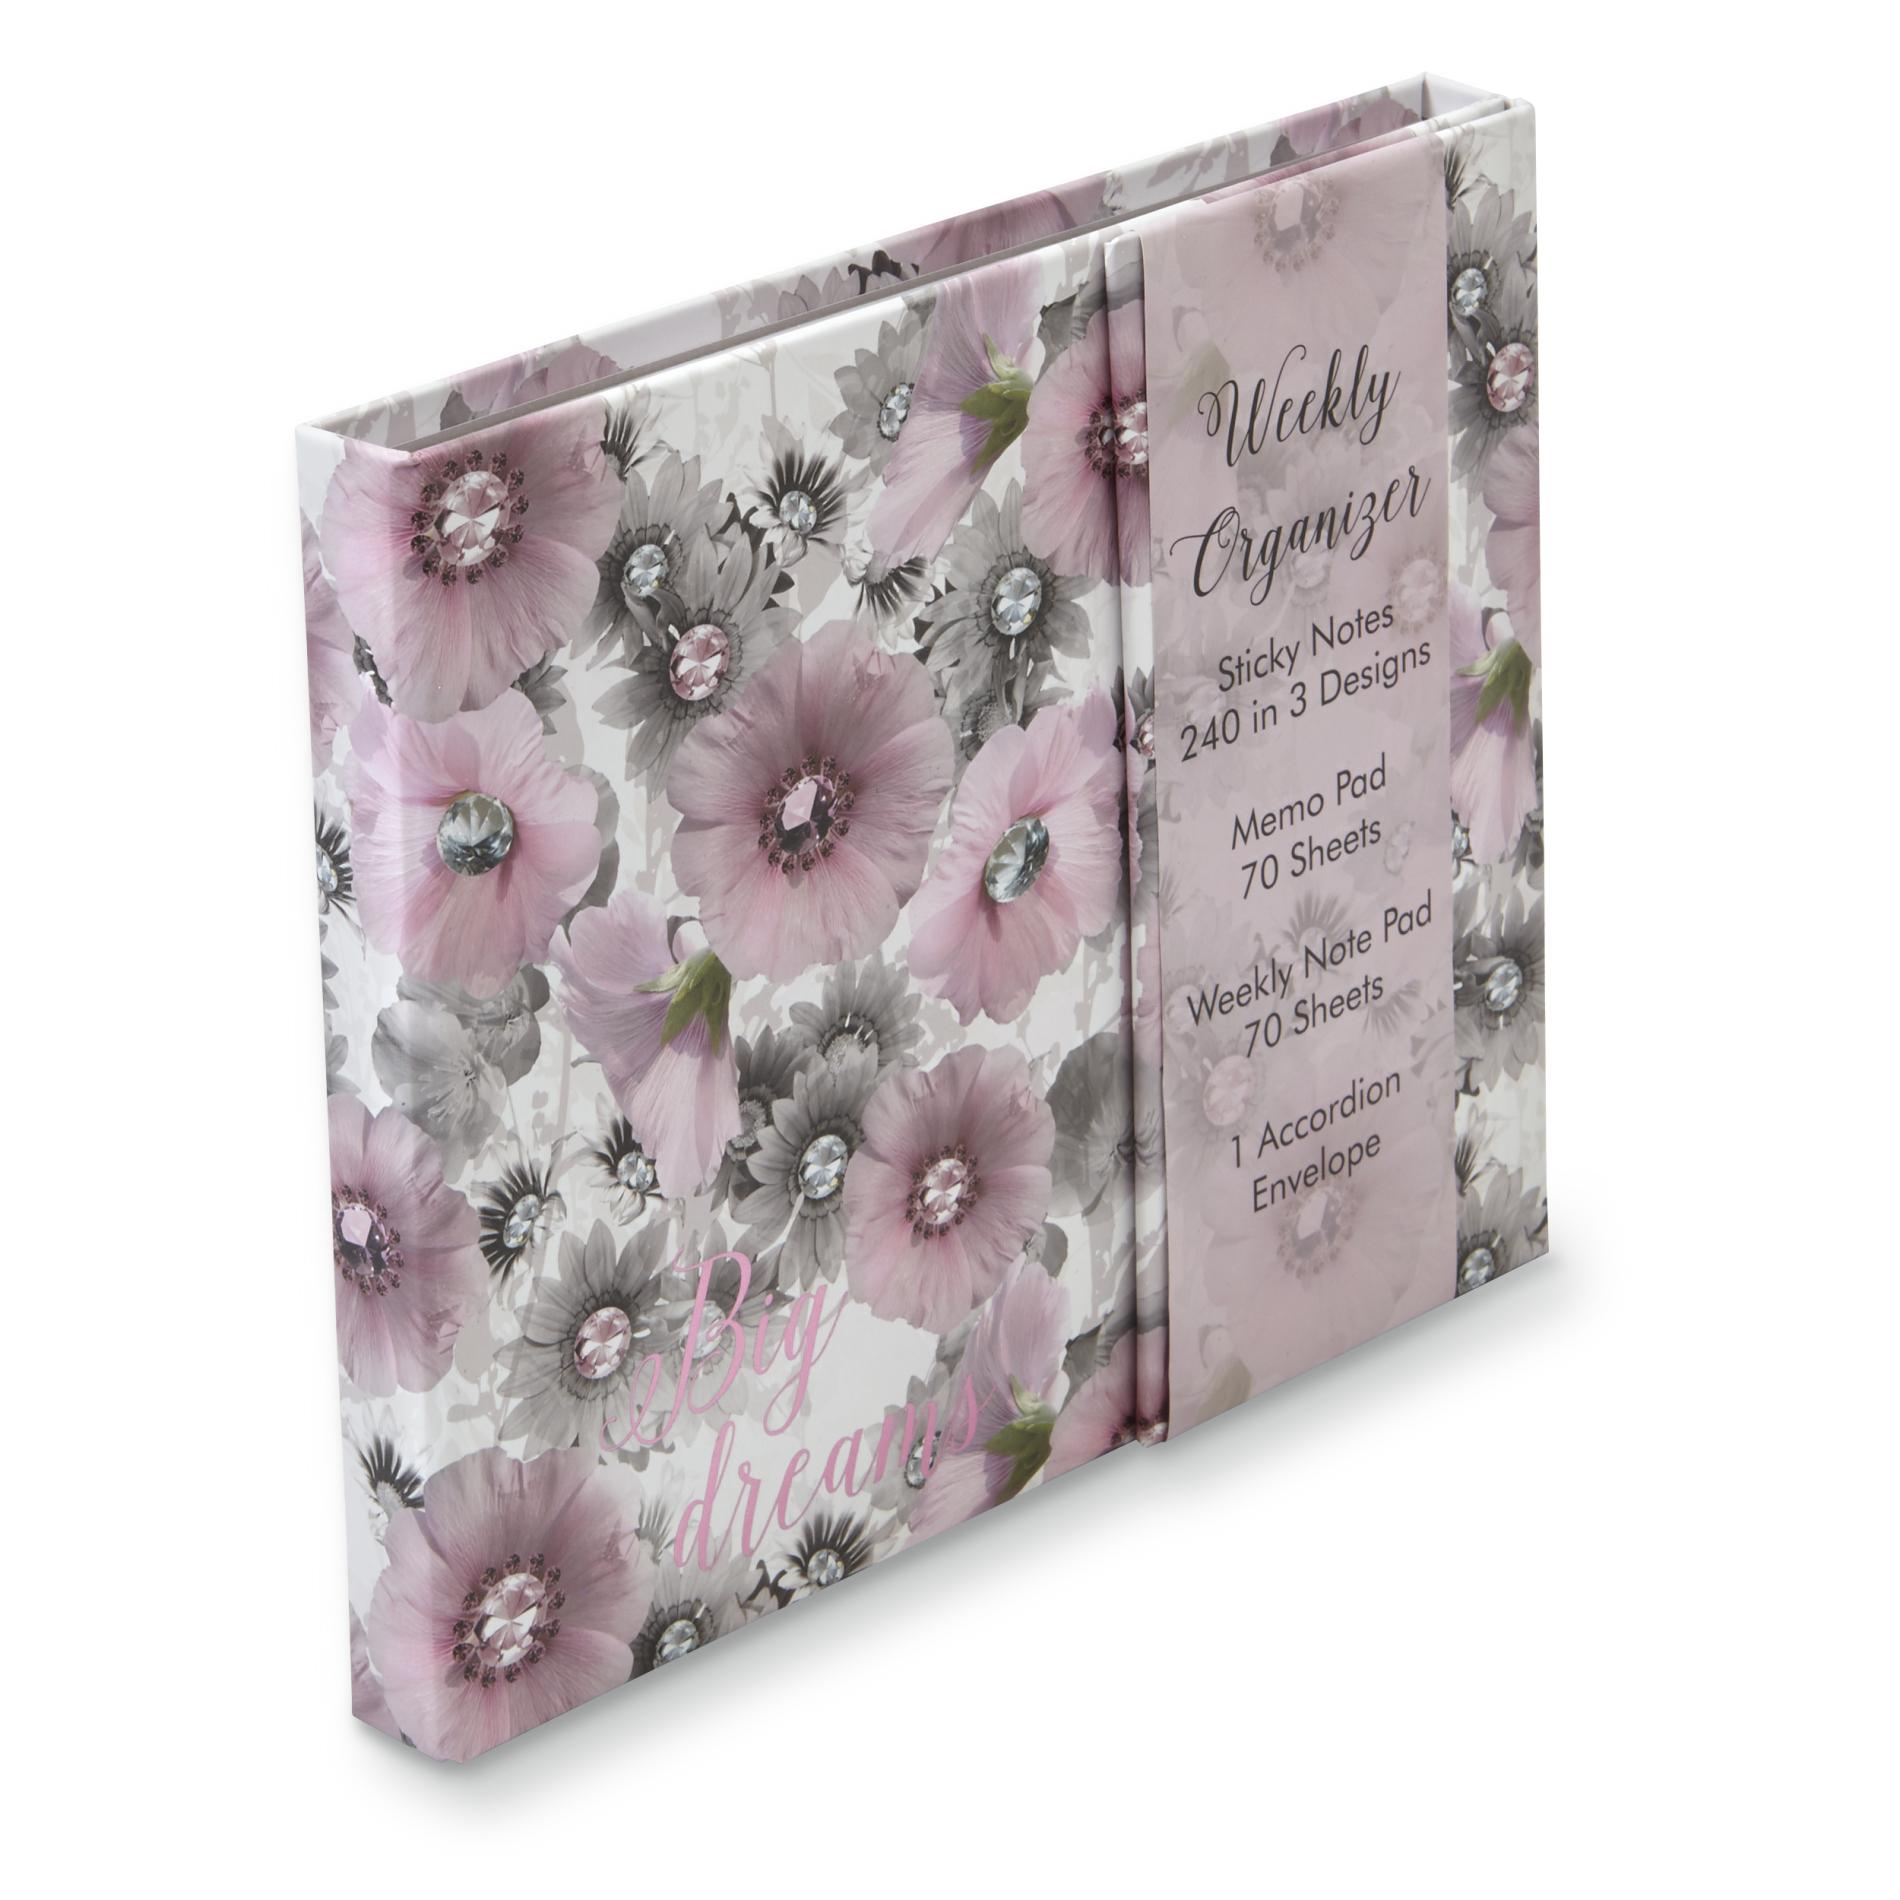 Image of 3461T-20139 Weekly Organizer - Flowers & Jewels, Multi Color